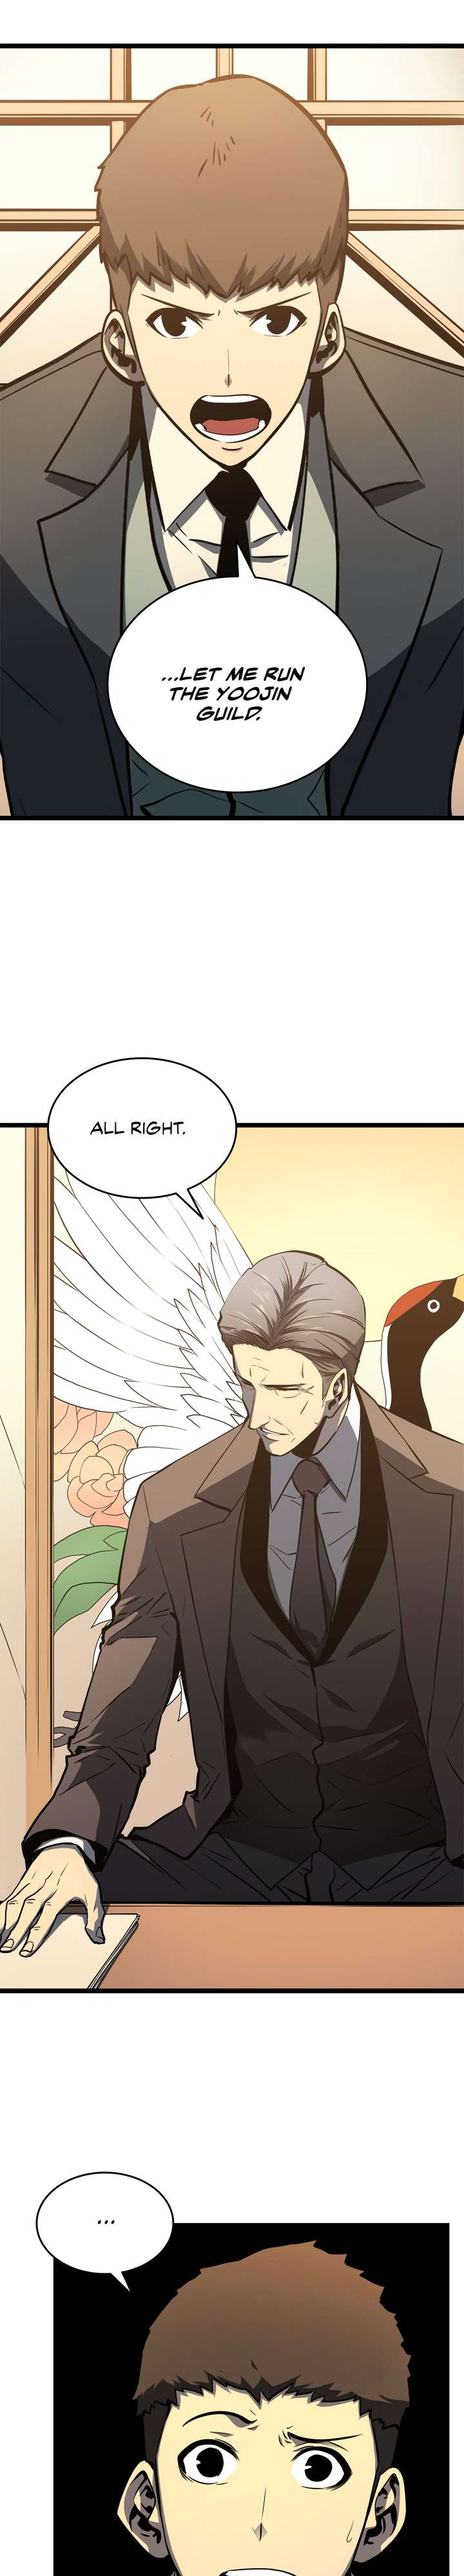 Solo Leveling Chapter 57 Page 23